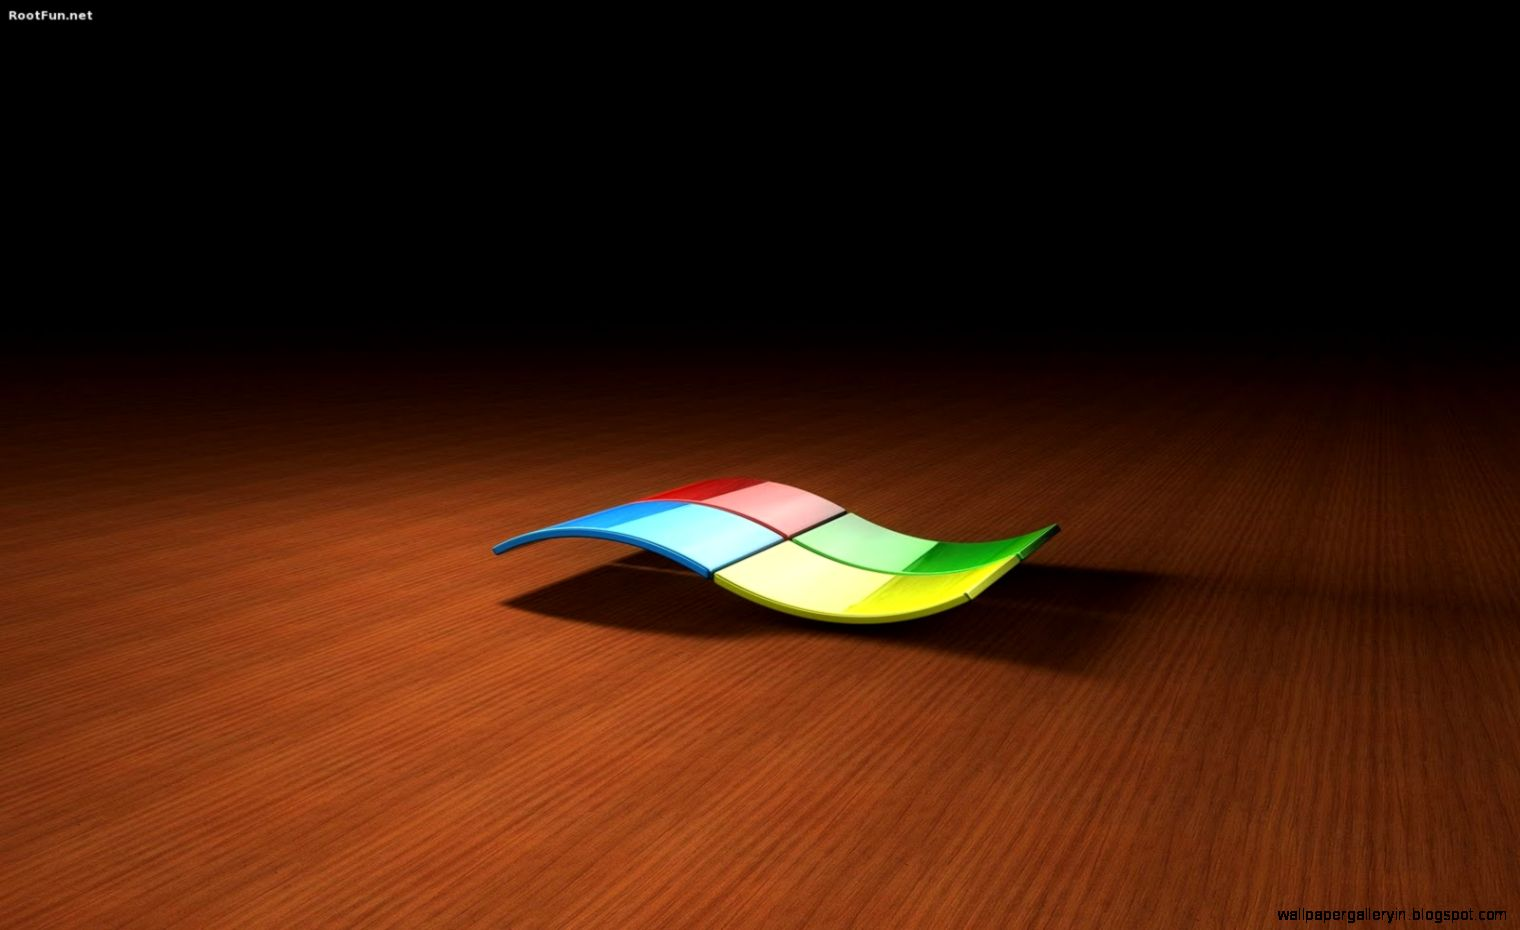 3D Logo Windows 7 Wallpaper  Free High Definition Wallpapers